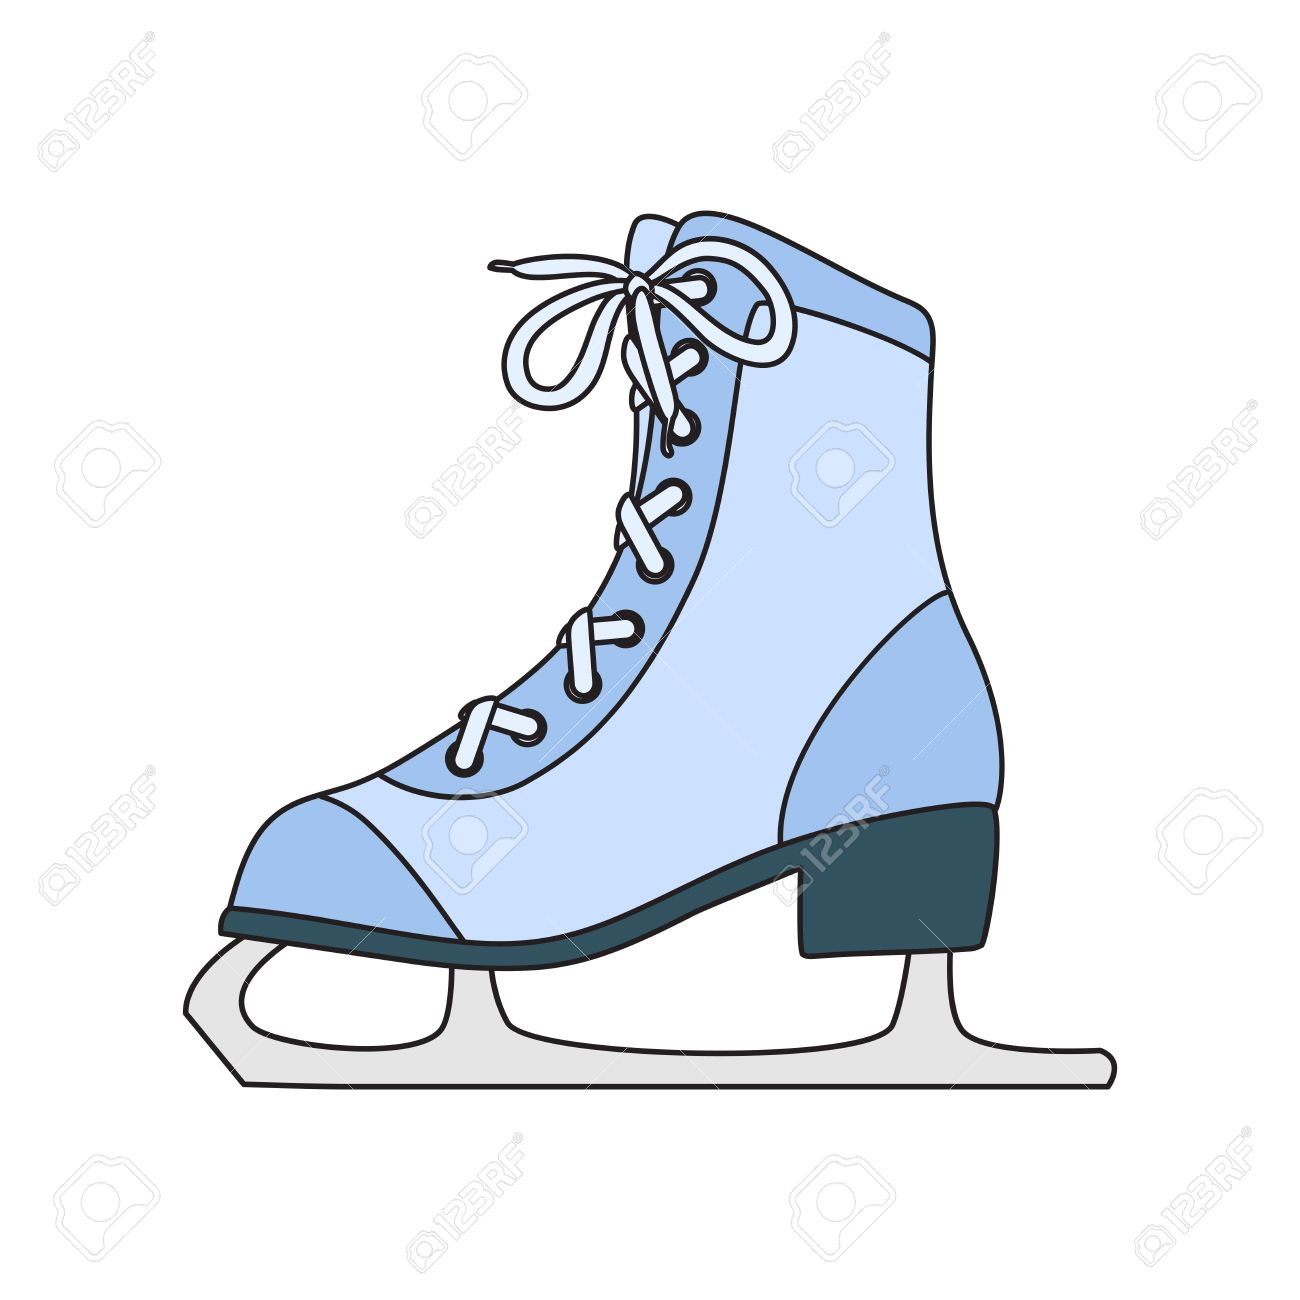 1300x1300 Ice Skates Line Art Drawing On White Background Royalty Free